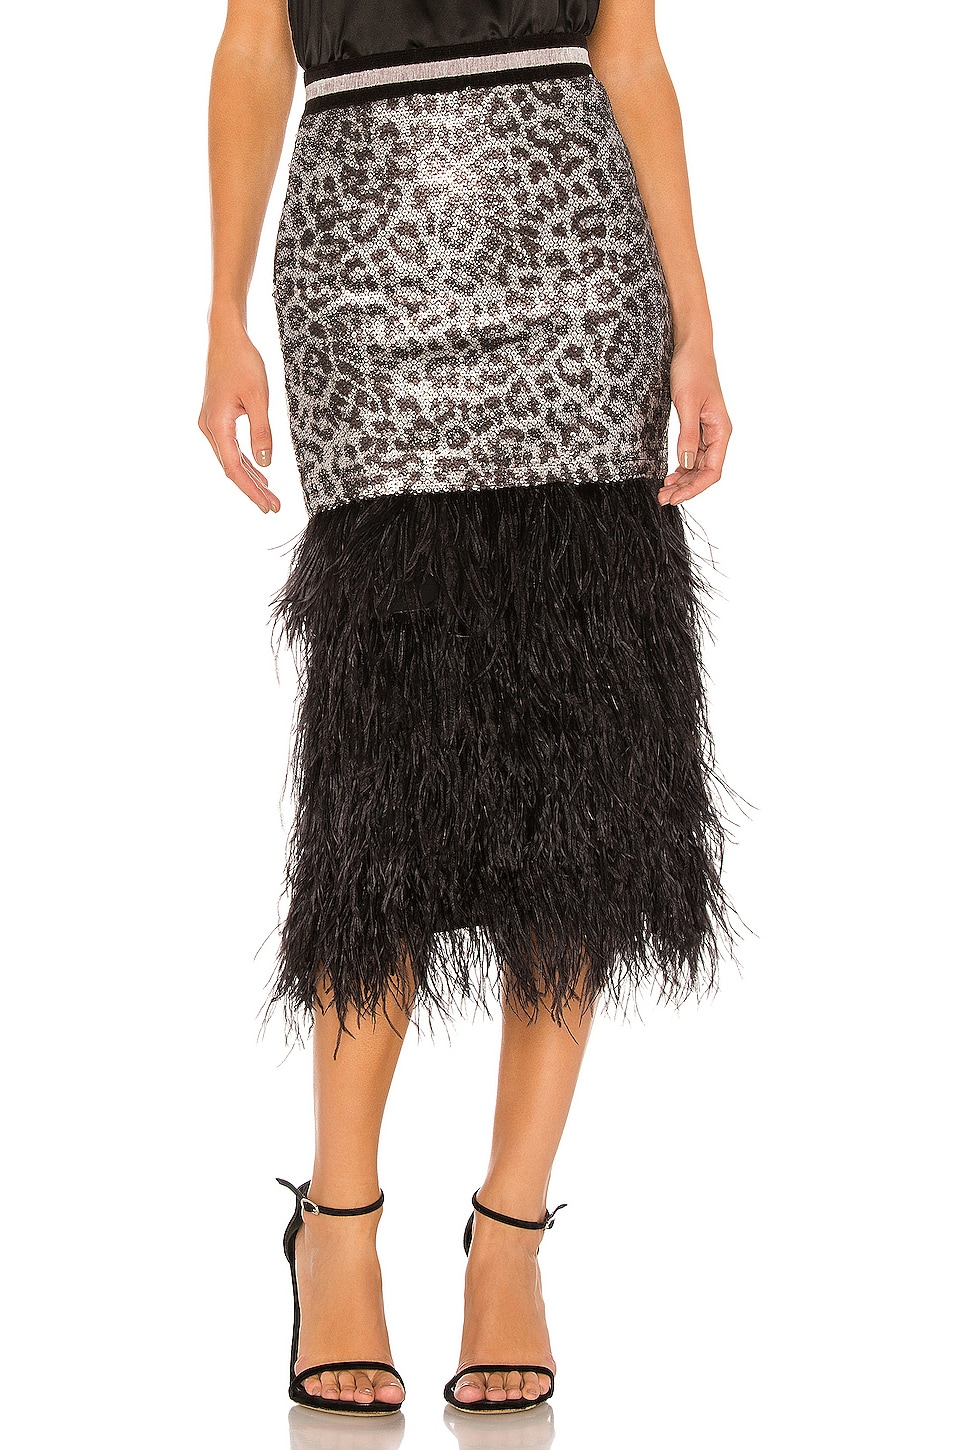 Le Superbe Marmont Sequin Skirt in Starwood Spot